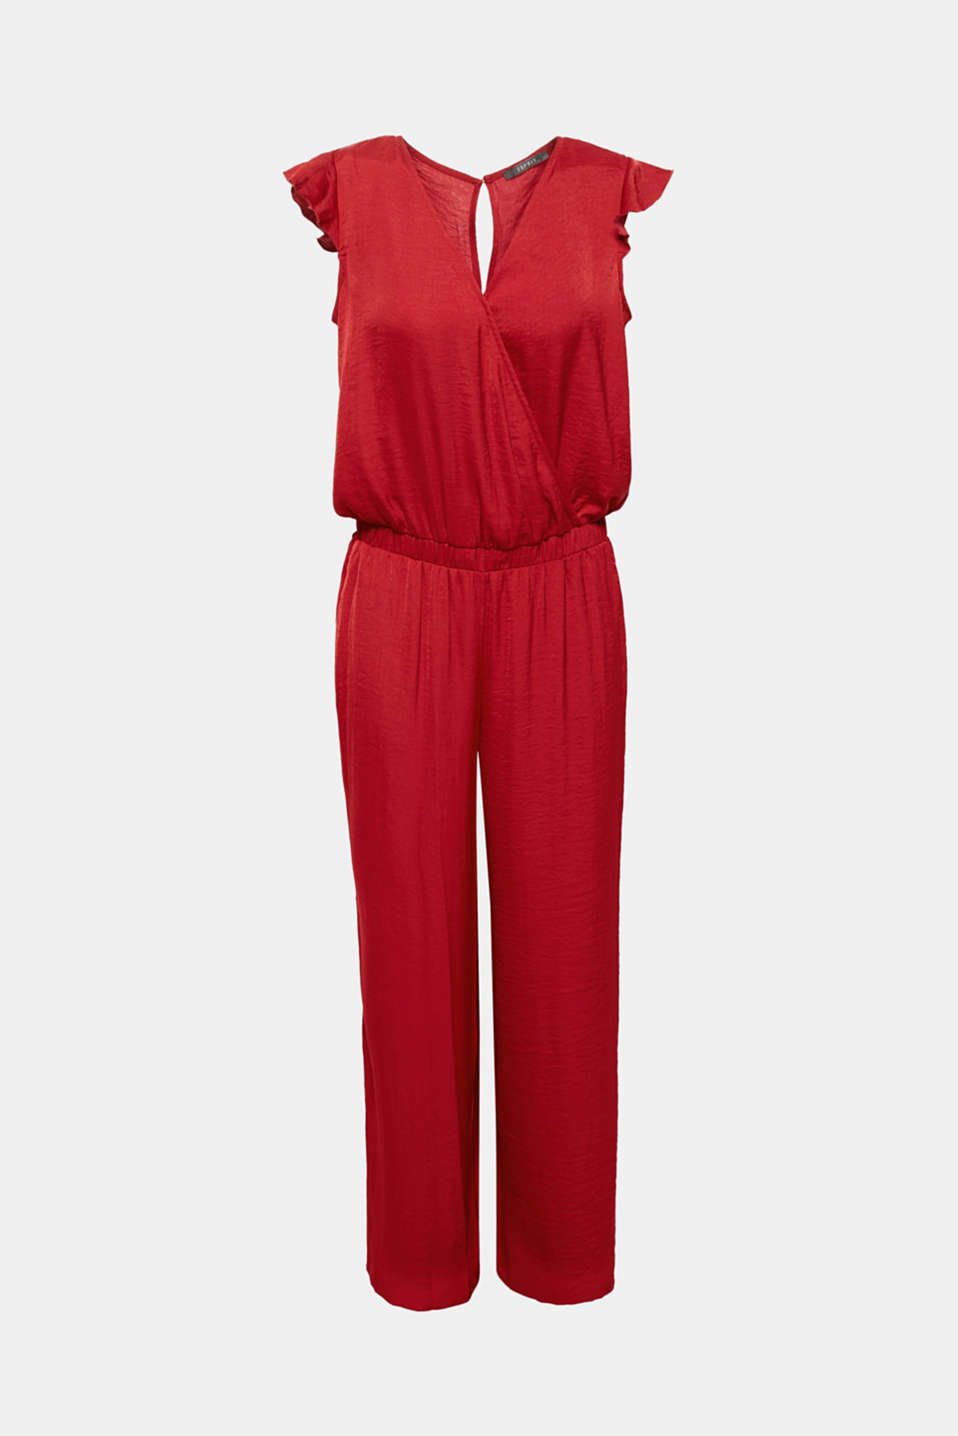 Simply pull it on and look seriously super chic: this jumpsuit features elegantly shimmery crushed fabric, which coordinates perfectly with the flowing, figure-skimming silhouette.